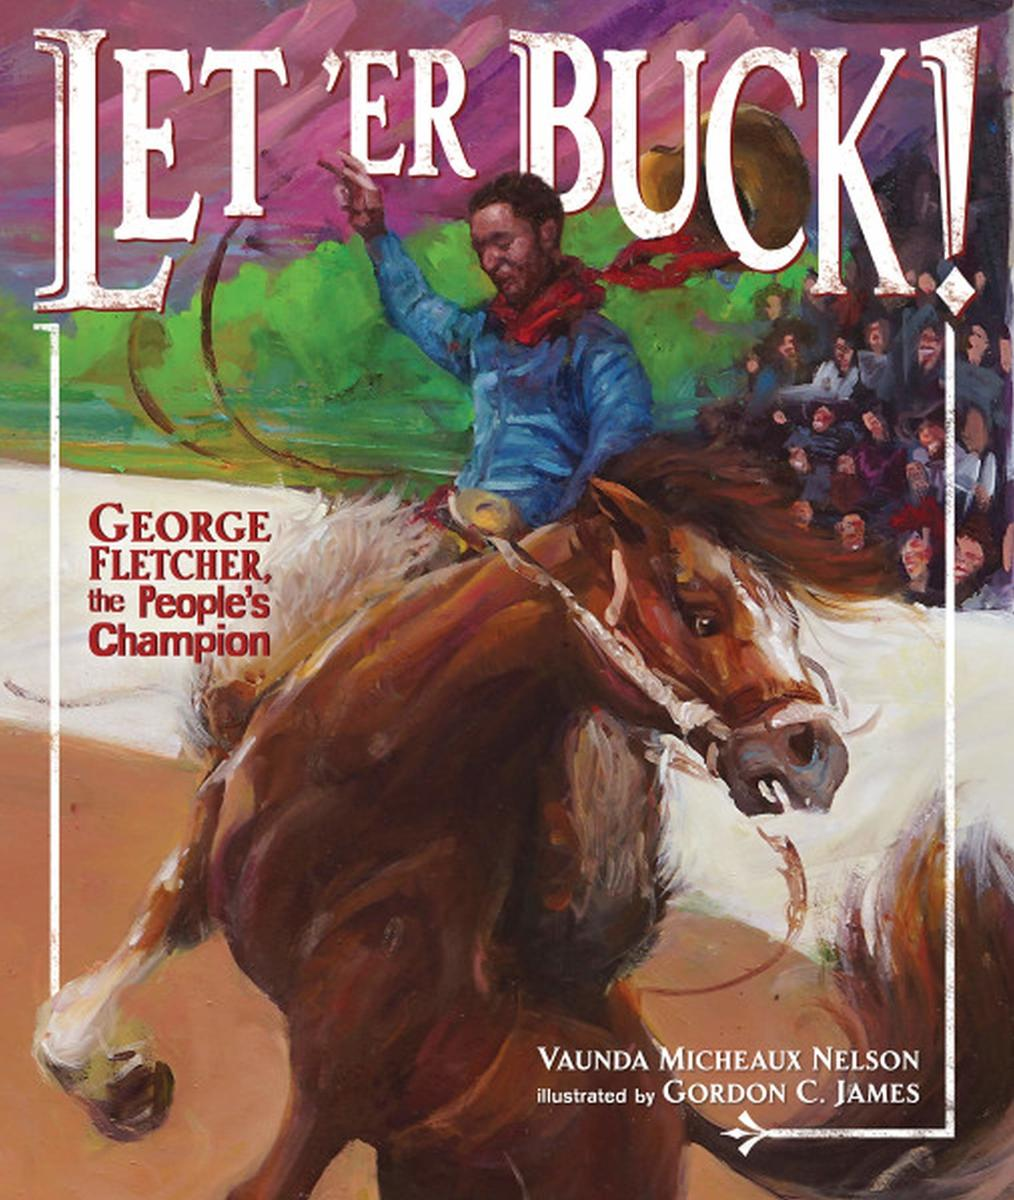 Let 'Er Buck: George Fletcher, the People's Champion by Vaunda Micheaux Nelson